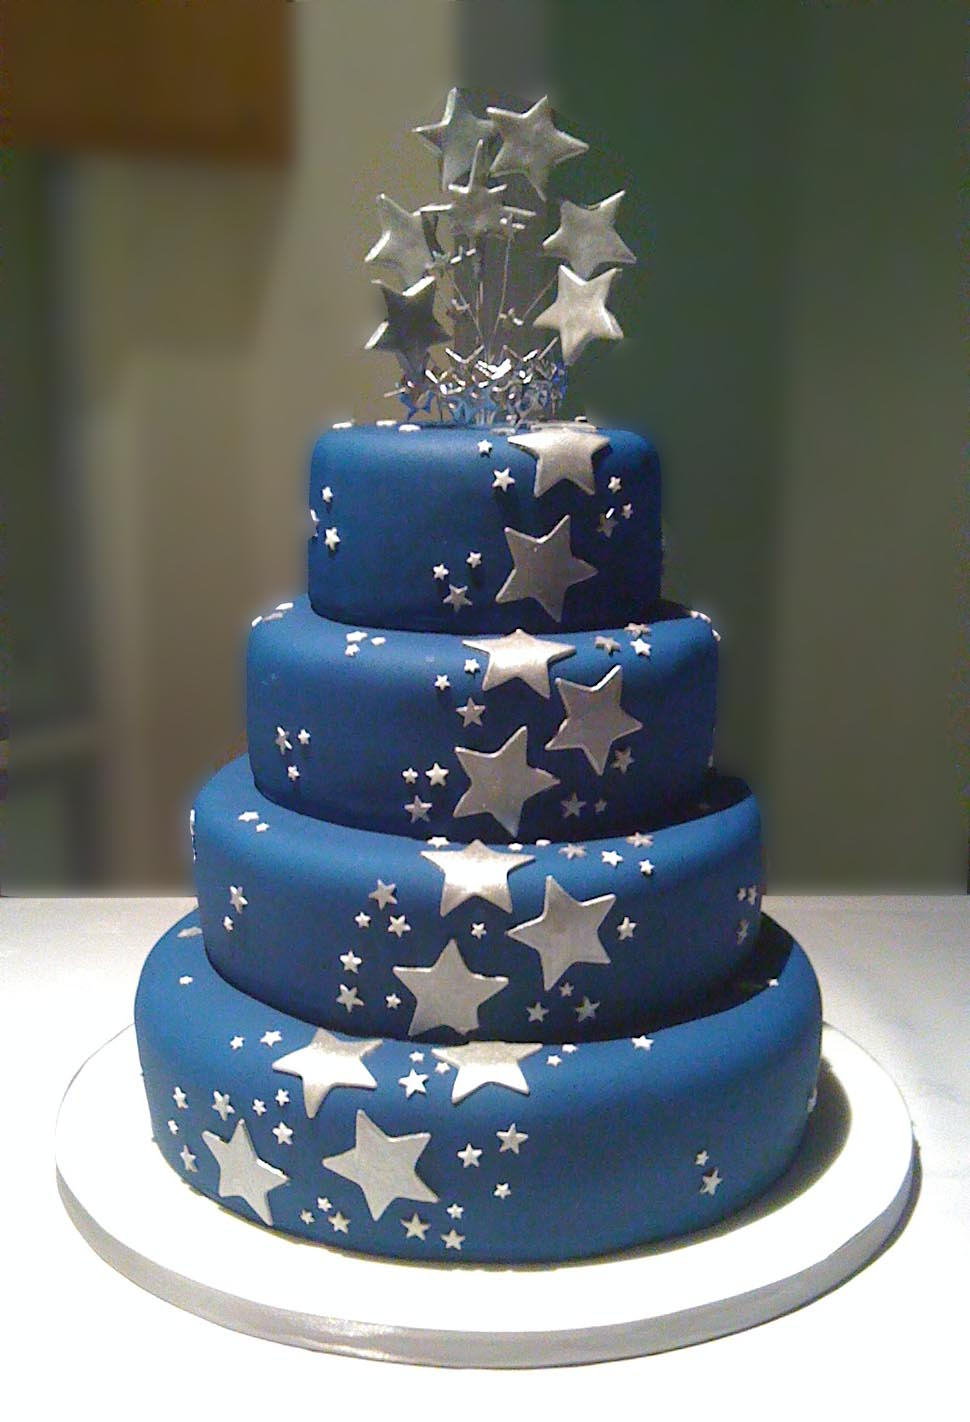 Blue Wedding Cake Ideas : Beautiful bridal navy blue wedding cakes